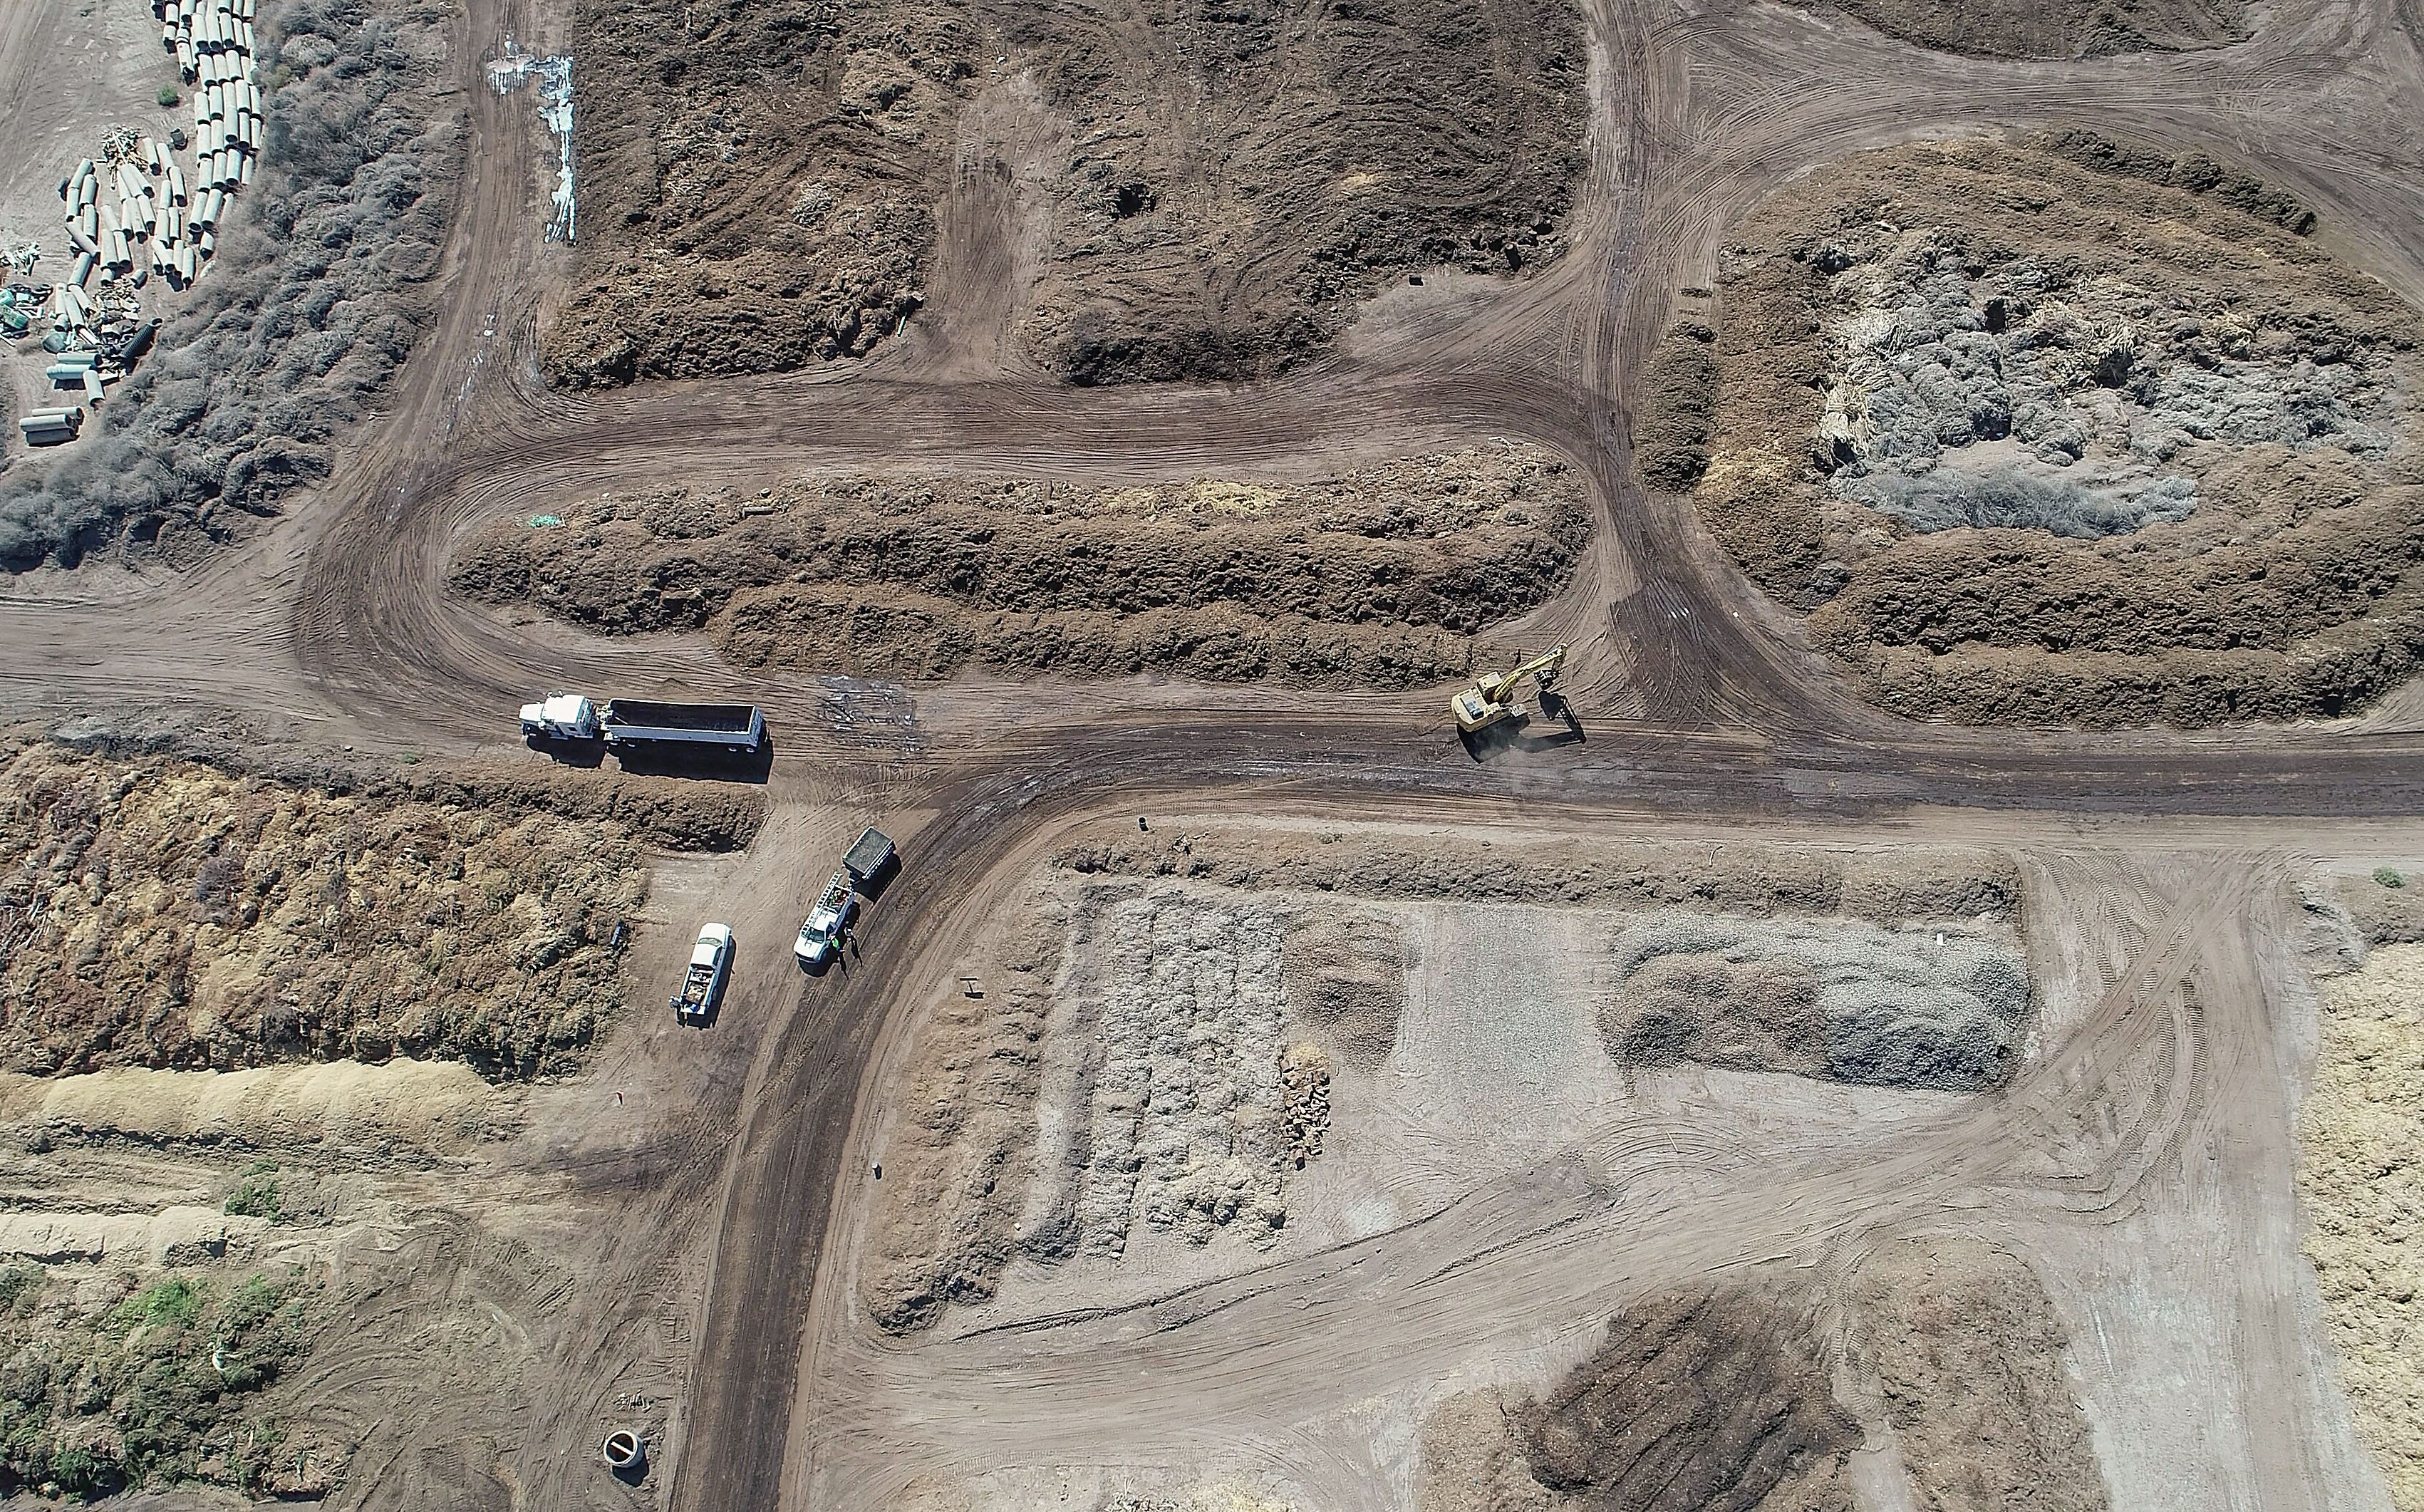 Green waste is sorted and piled at the Sun Valley Recycling and Soil Amendment Co. on the Torres Martinez Reservation in Thermal, Calif. in this aerial drone photograph, October 9, 2019.